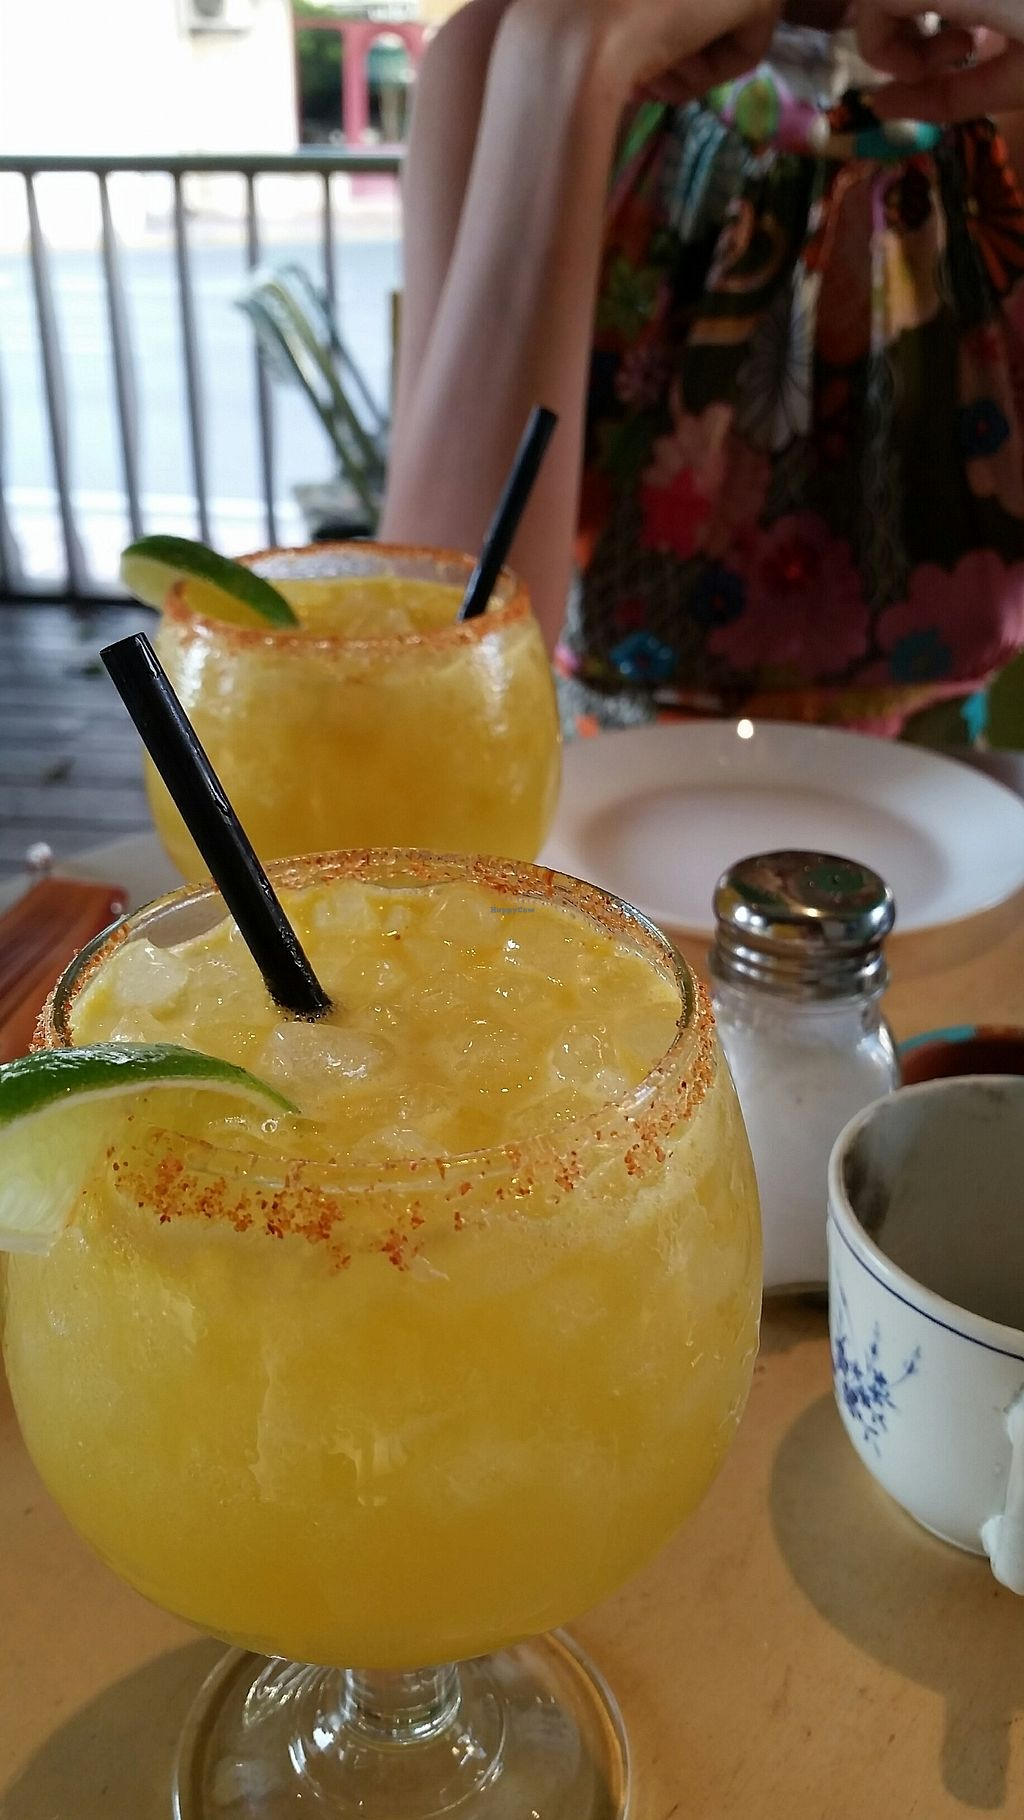 """Photo of Taco Paco  by <a href=""""/members/profile/rominargh"""">rominargh</a> <br/>Passion fruit margarita <br/> August 1, 2017  - <a href='/contact/abuse/image/97558/287570'>Report</a>"""